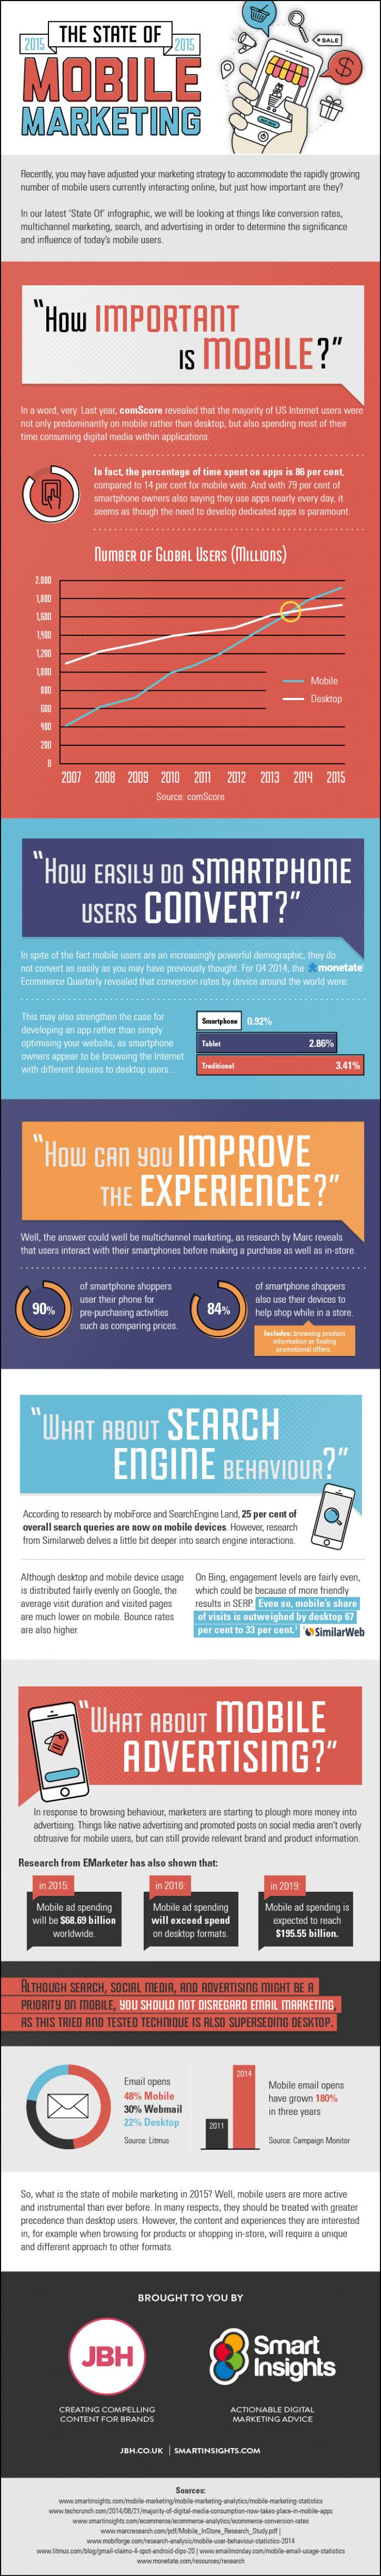 This infographic answers the digital marketing questions like: How important is mobile for businesses? How easily do smartphone users convert? How can you improve the user experience? What about search engine behavior? And what about mobile advertising?